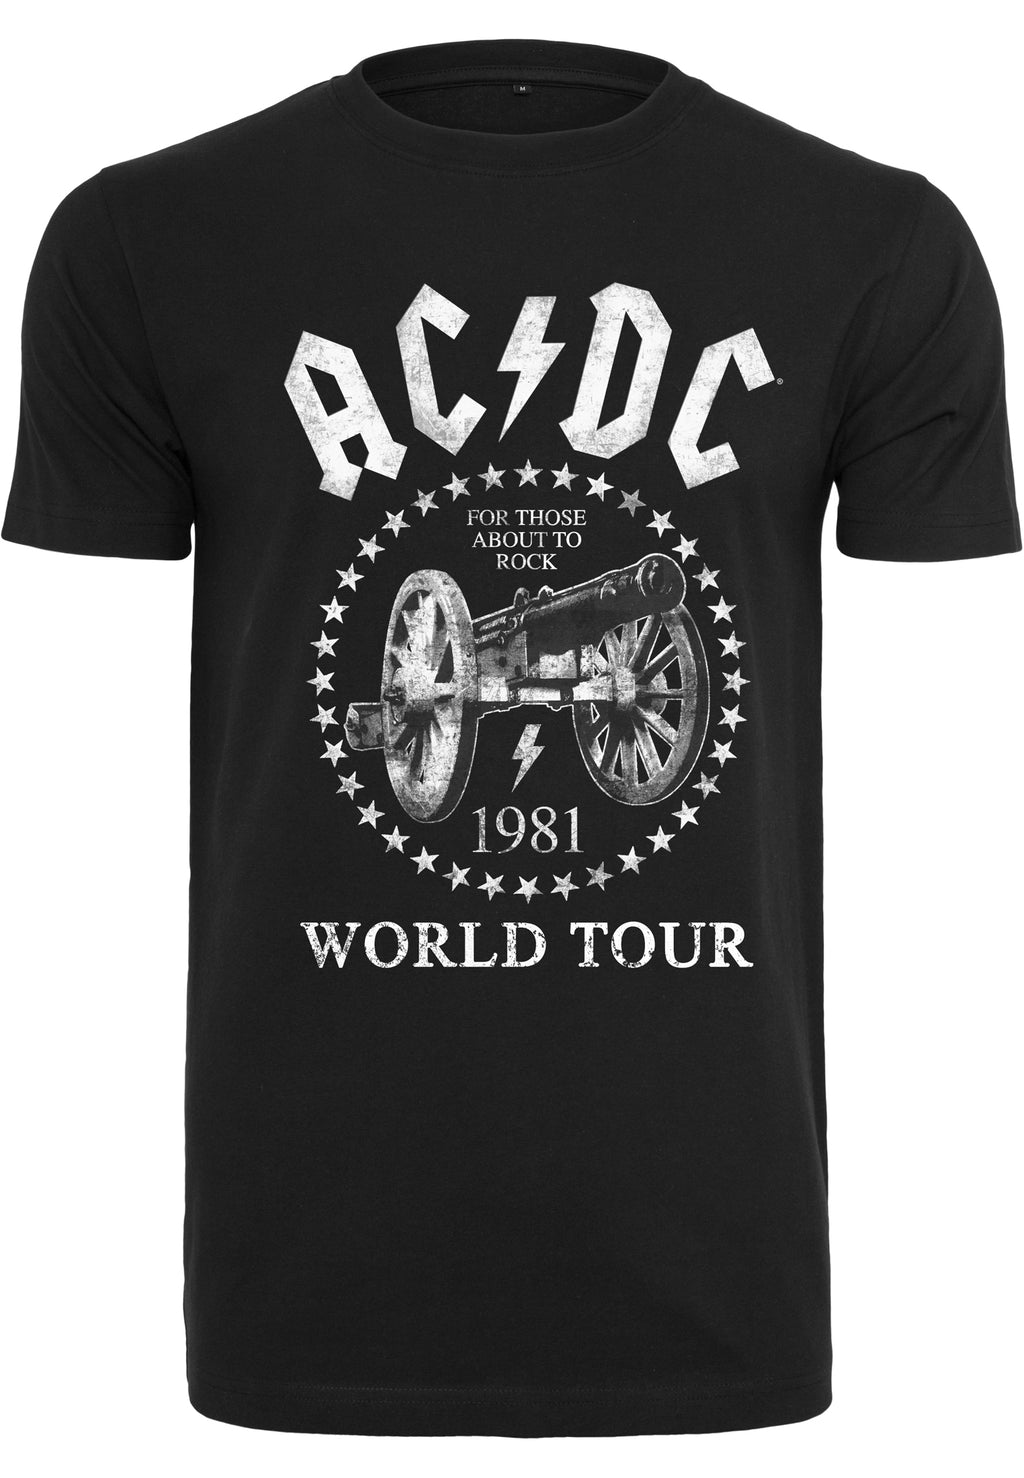 ACDC For Those About To Rock Tee